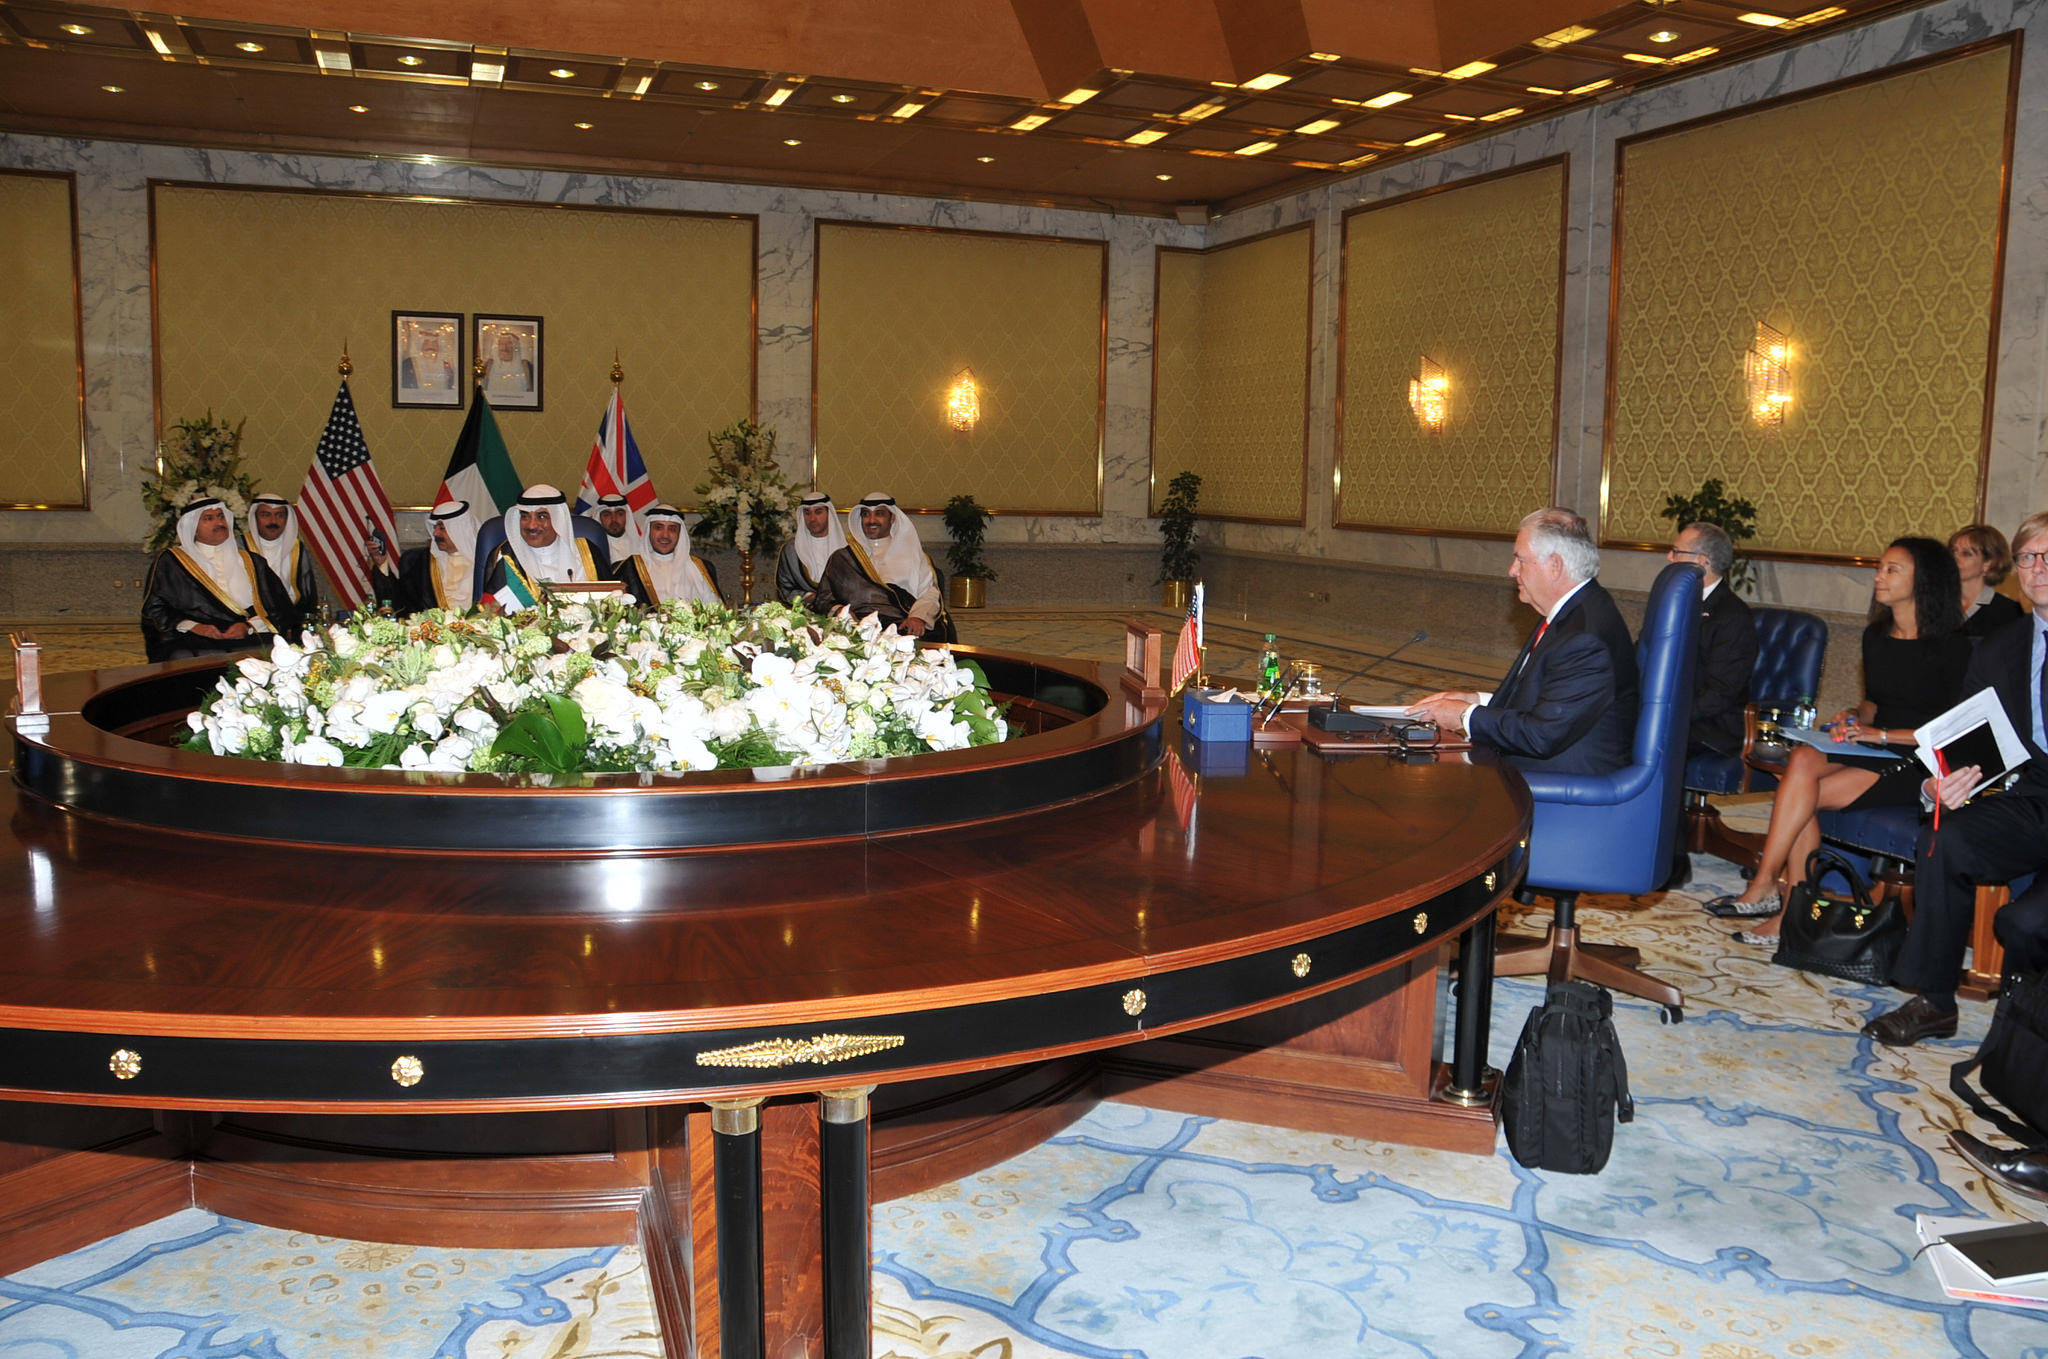 U.S. Secretary of State Rex Tillerson participates in a meeting with Foreign Minister Sheikh Sabah al-Khaled, State Minister for Cabinet Affairs and Acting Minister of Information Sheikh Mohammed al-Abdullah al-Mubarak a-Sabah, and British National S...